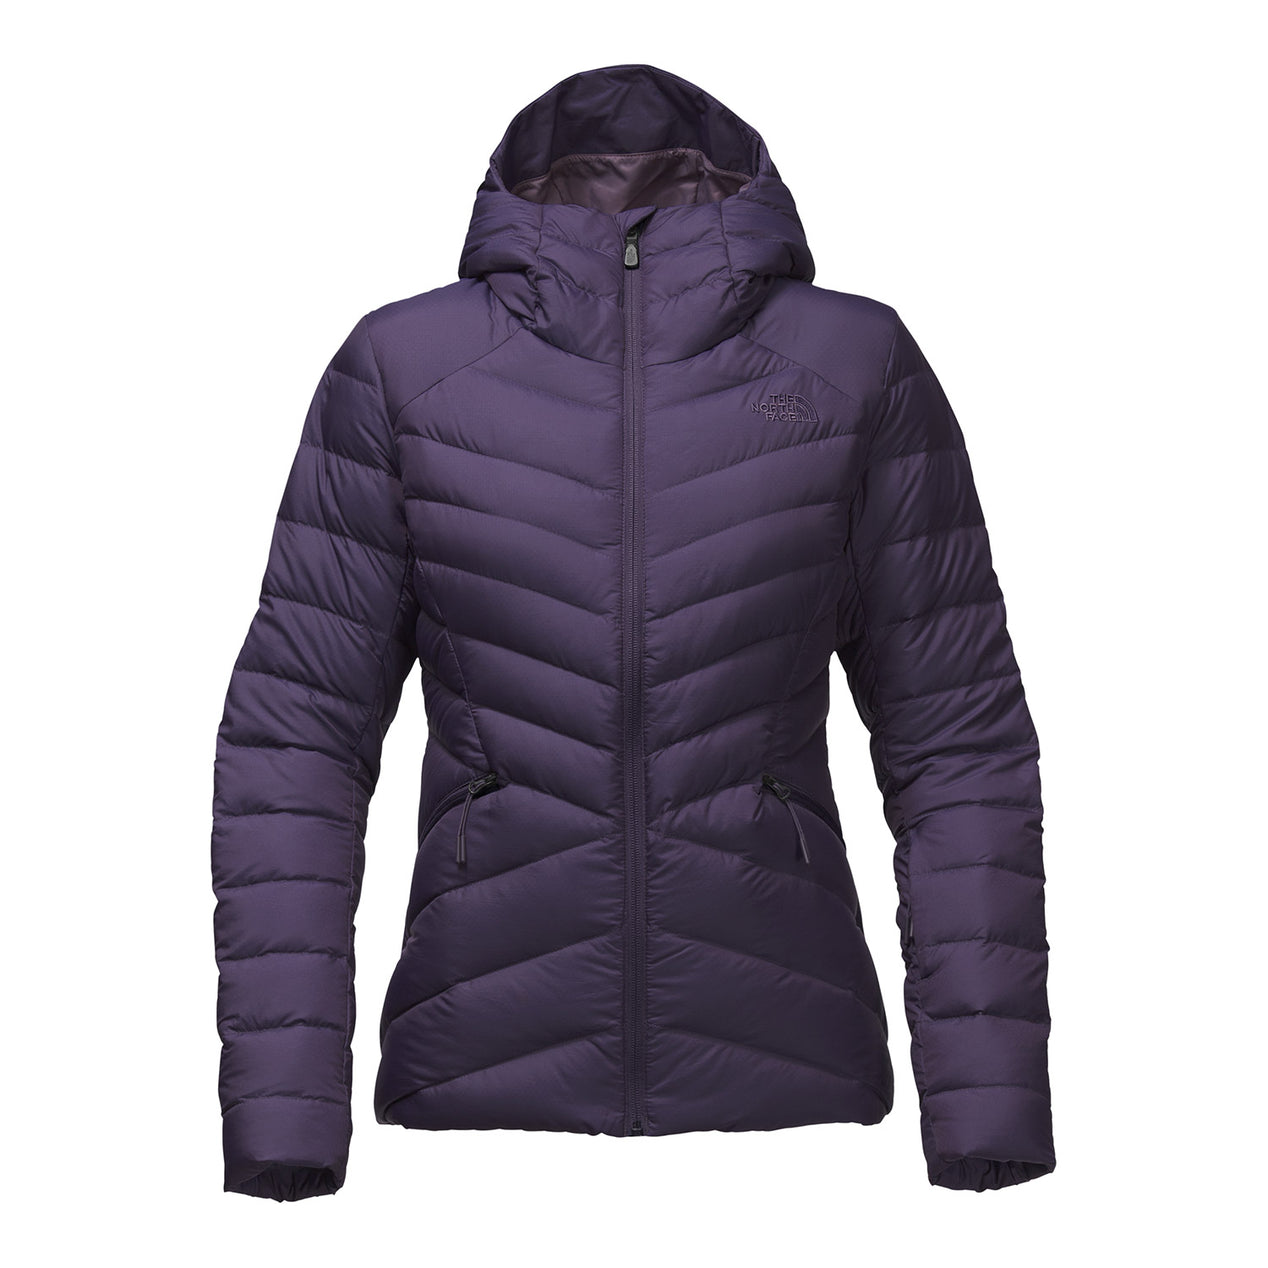 e6e006033afb23 The North Face Women s Moonlight Down Jacket